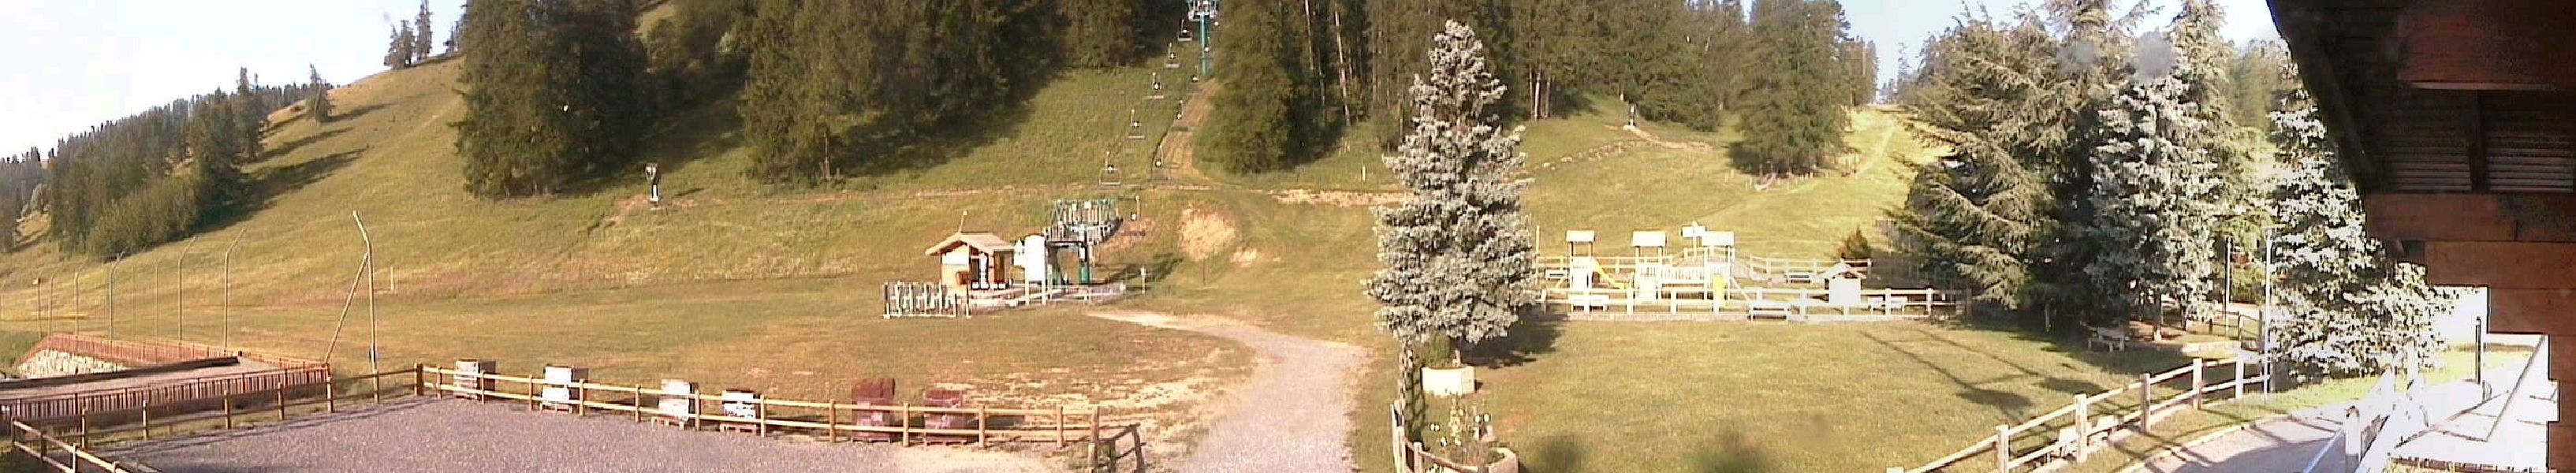 Webcam panoramique de la Croix � Valberg